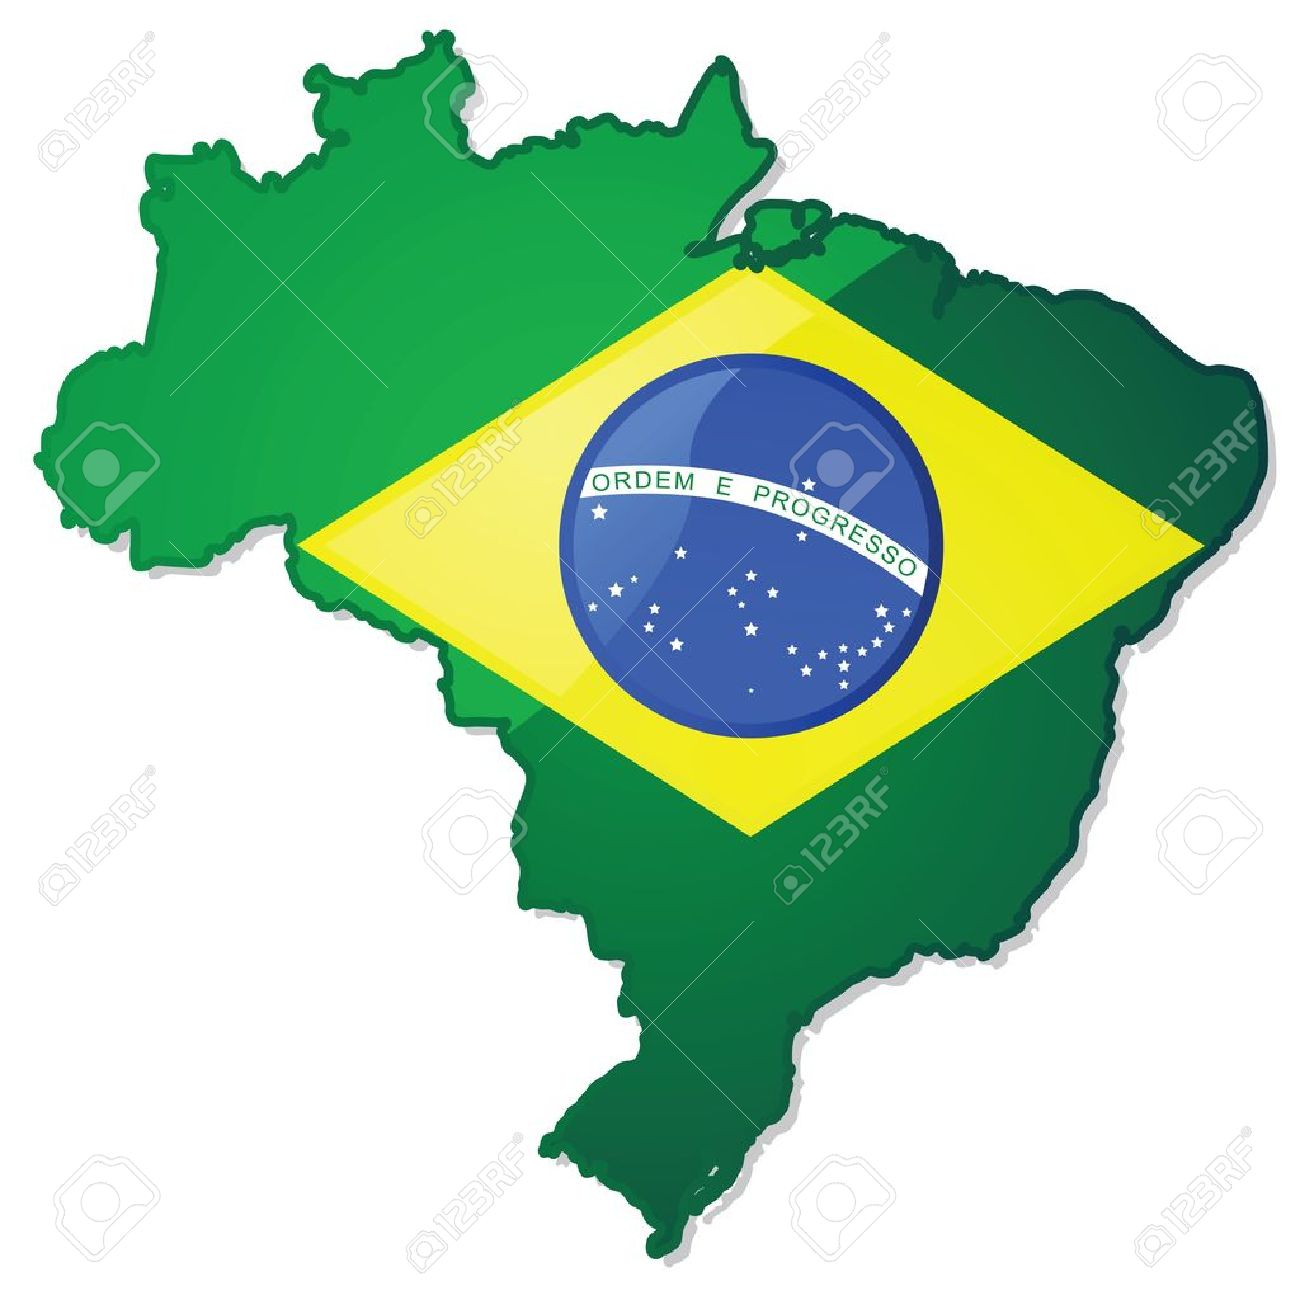 Glossy Illustration Of A Map Of Brazil With The Brazilian Flag - Brazil map illustration